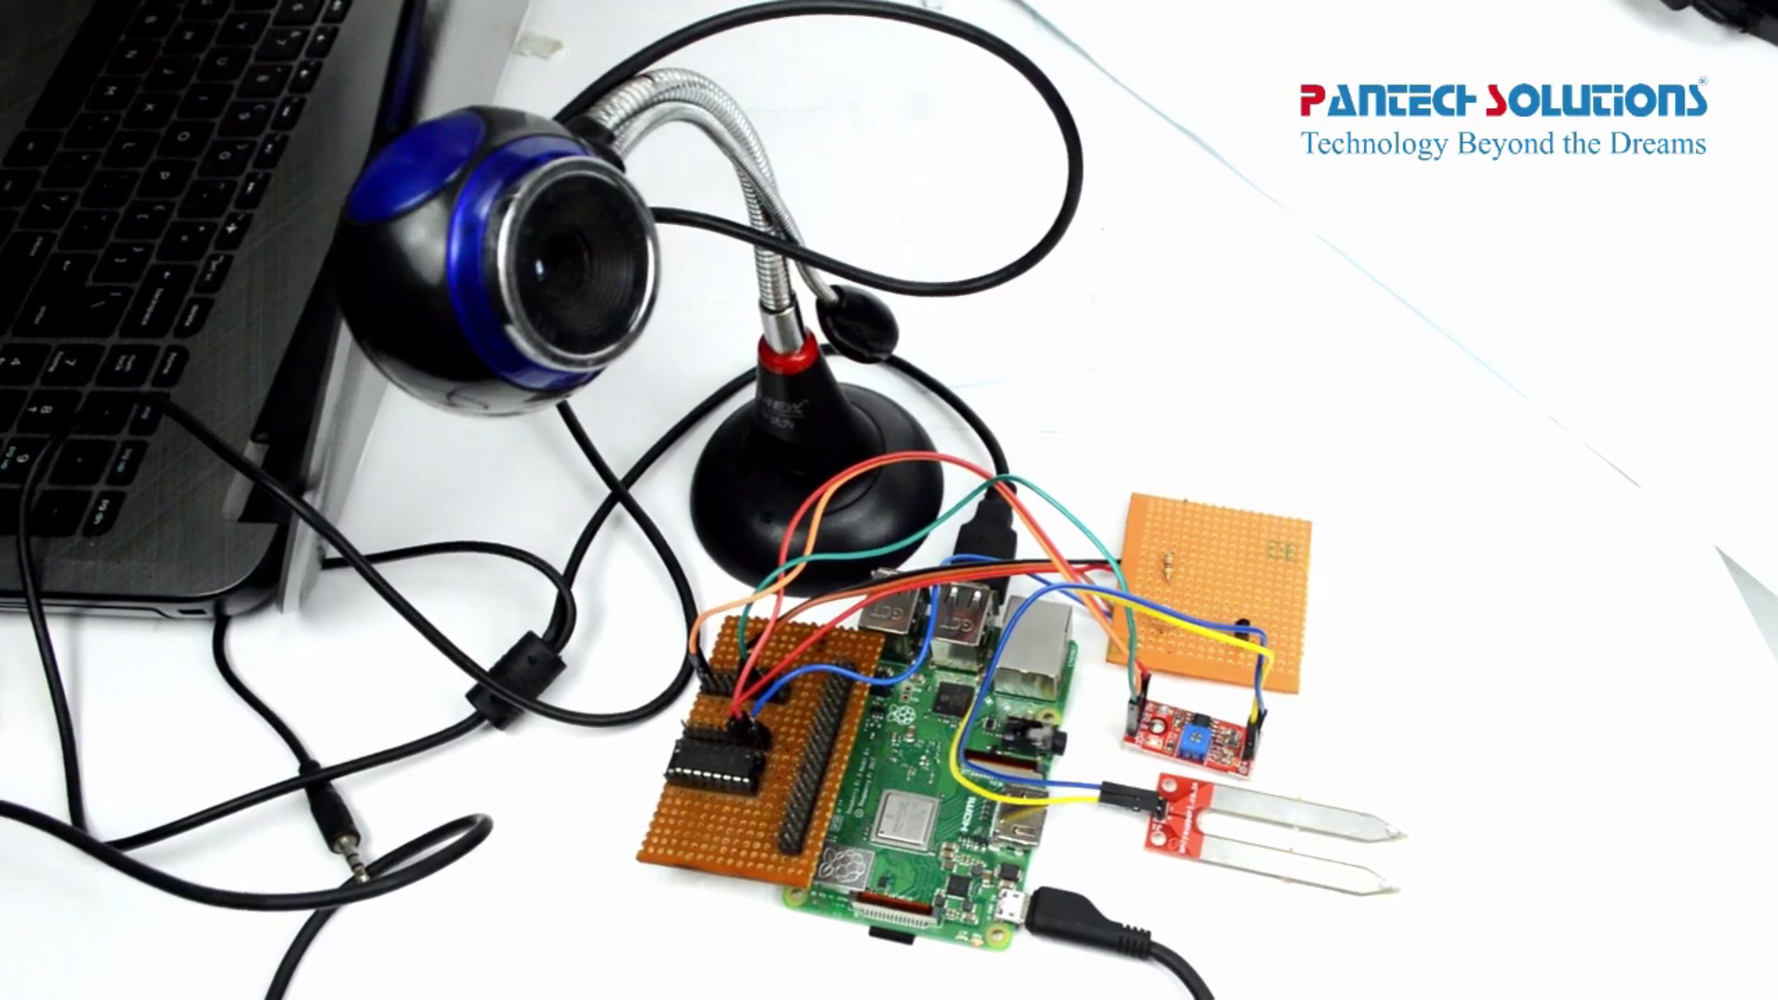 Smart Irrigation System using IoT and cloud